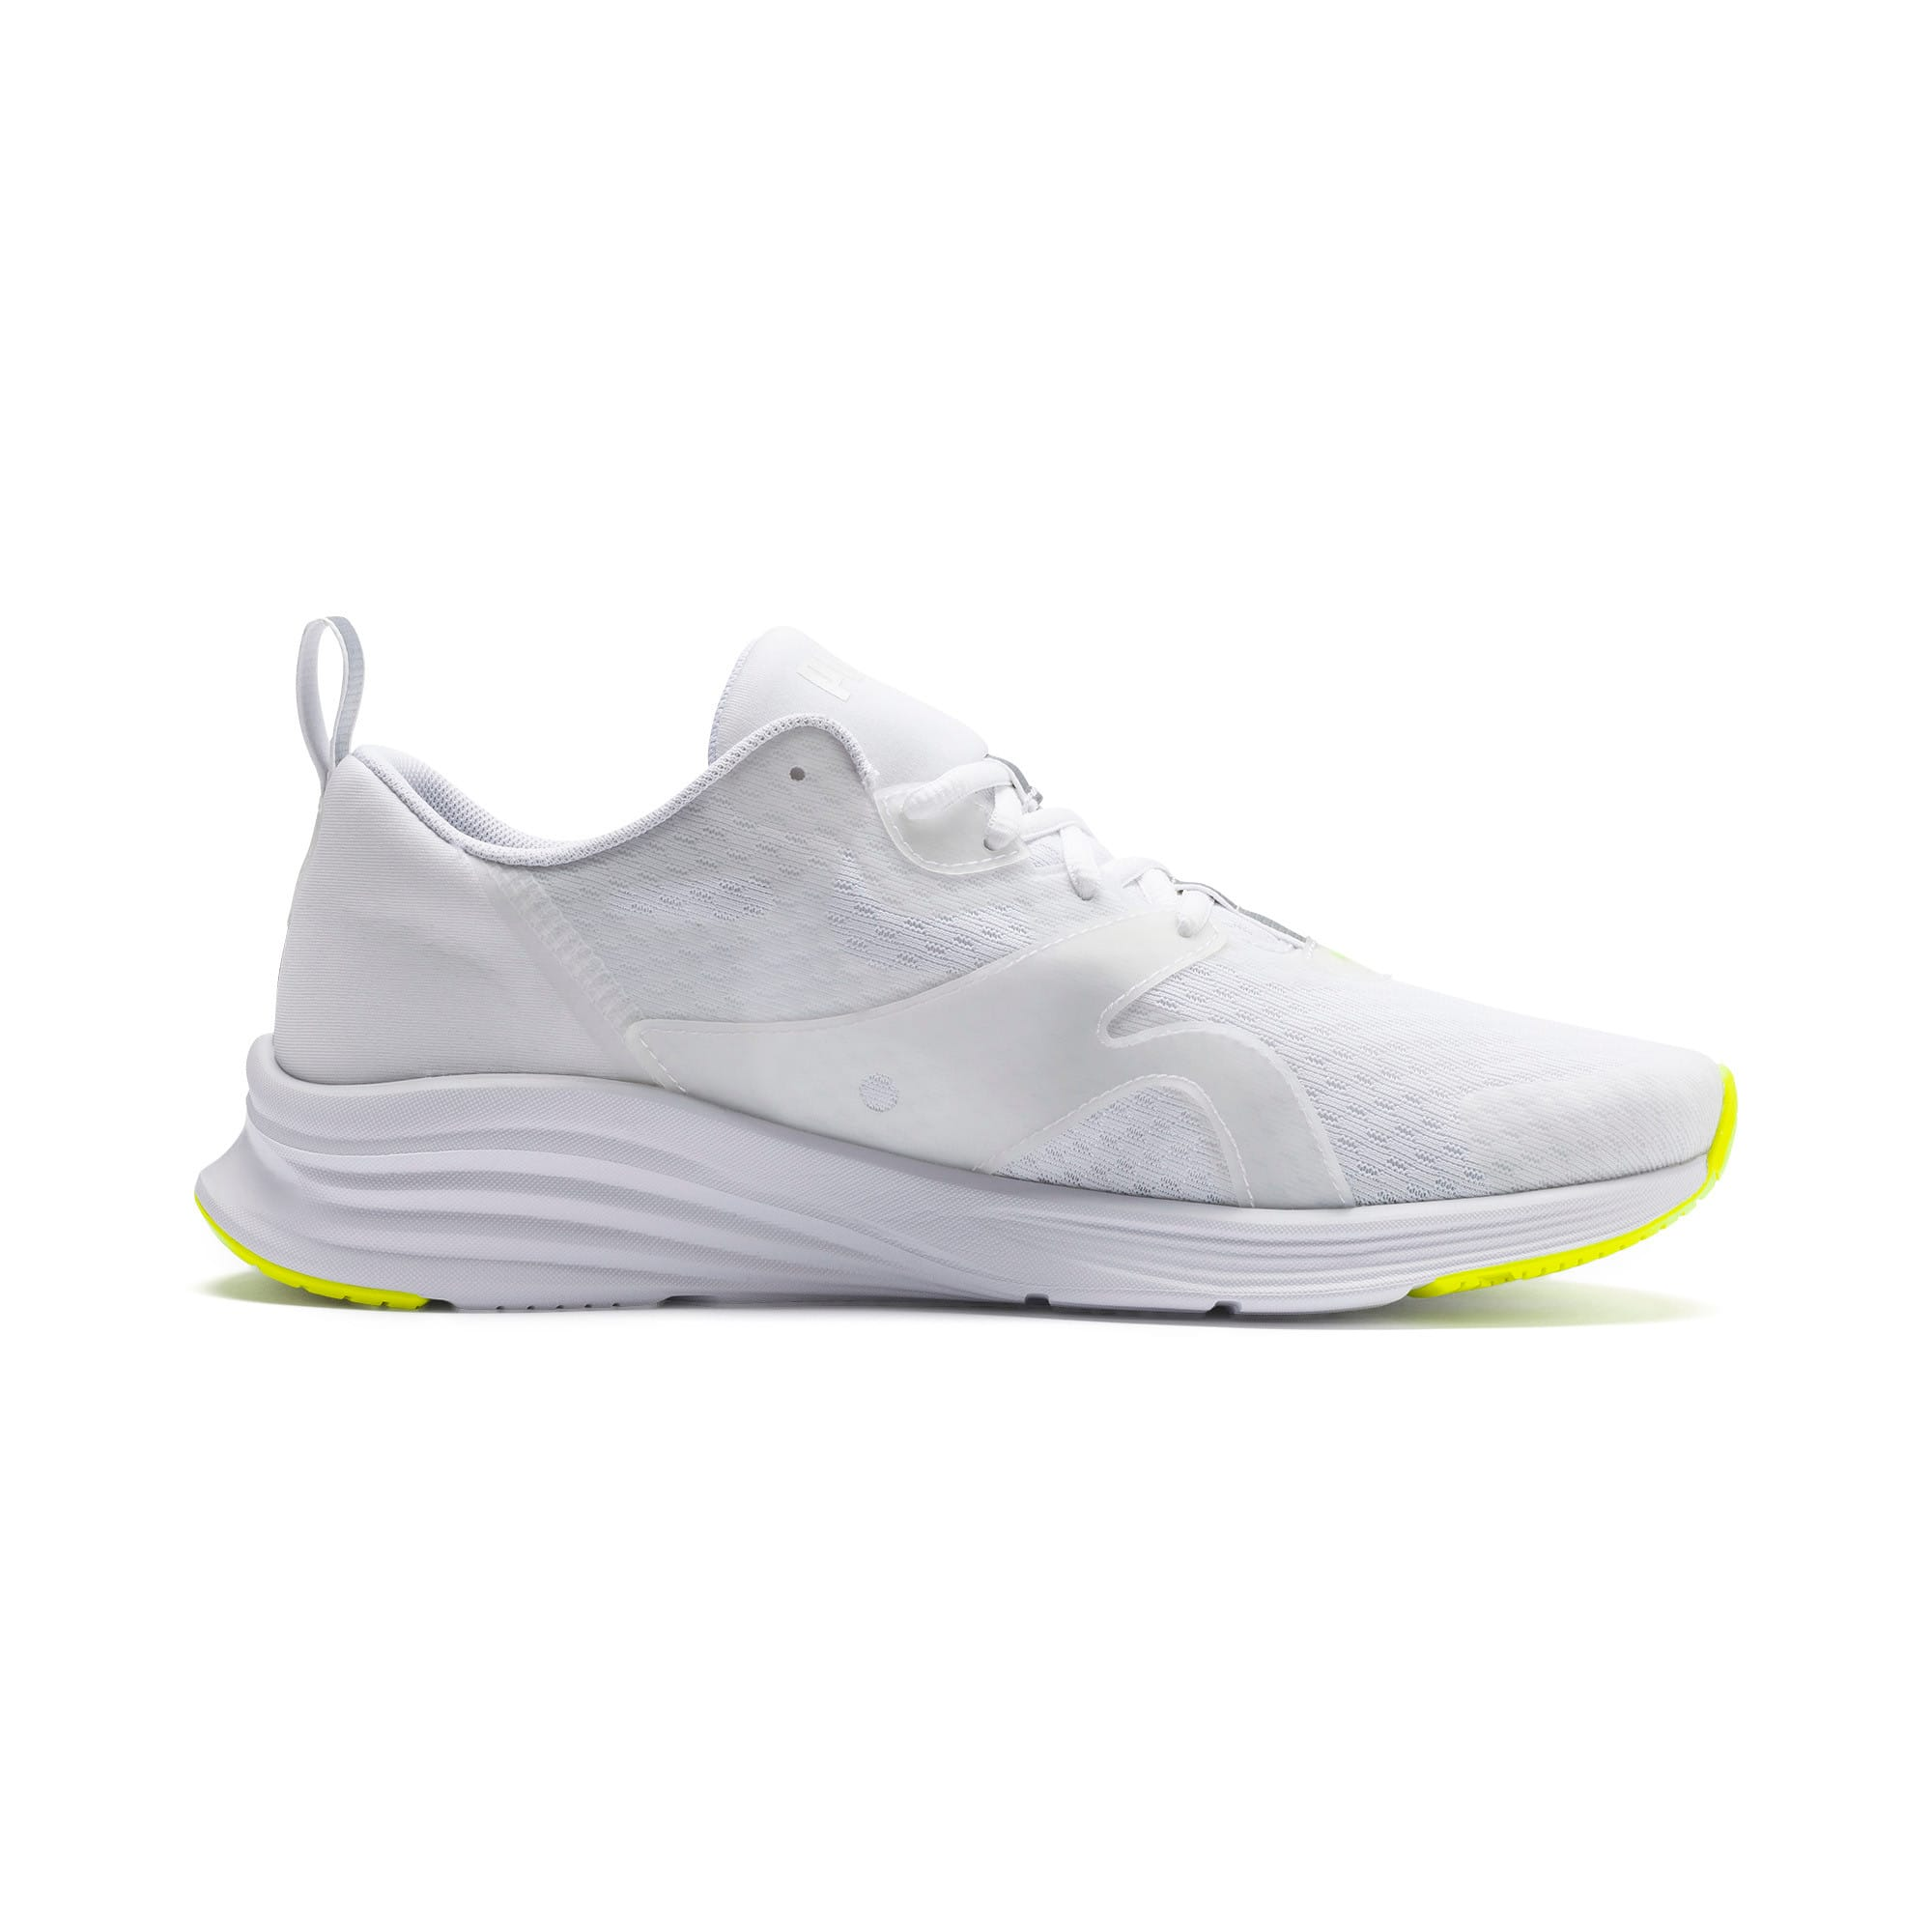 HYBRID Fuego Lights Men's Running Shoes, Puma White-Yellow Alert, large